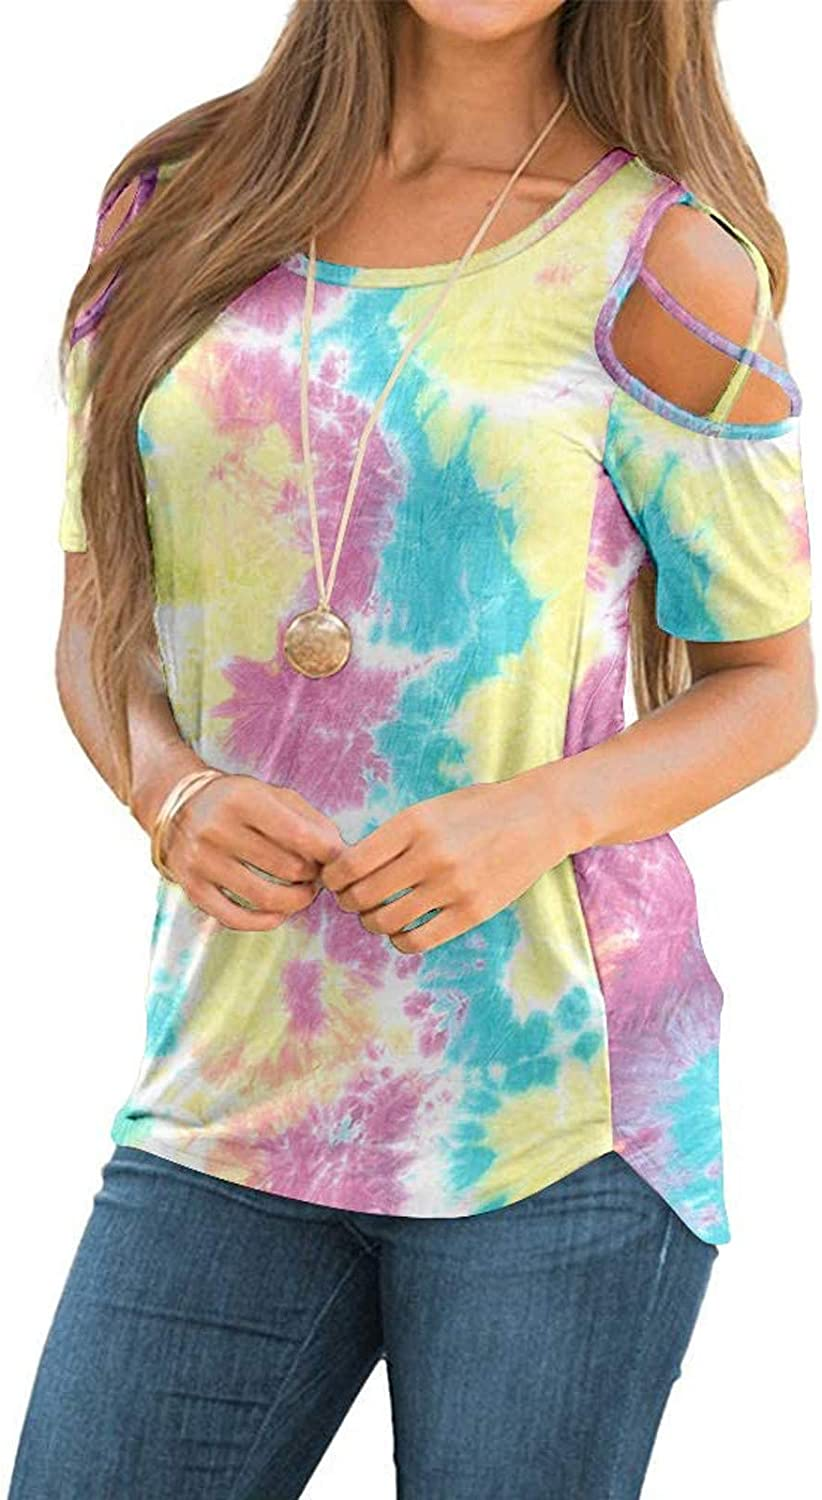 Short Sleeve Tops for Women,Womens Short Sleeve Crewneck T Shirts Tees Casual Loose Fit Strappy Cold Shoulder Tshirts Tops